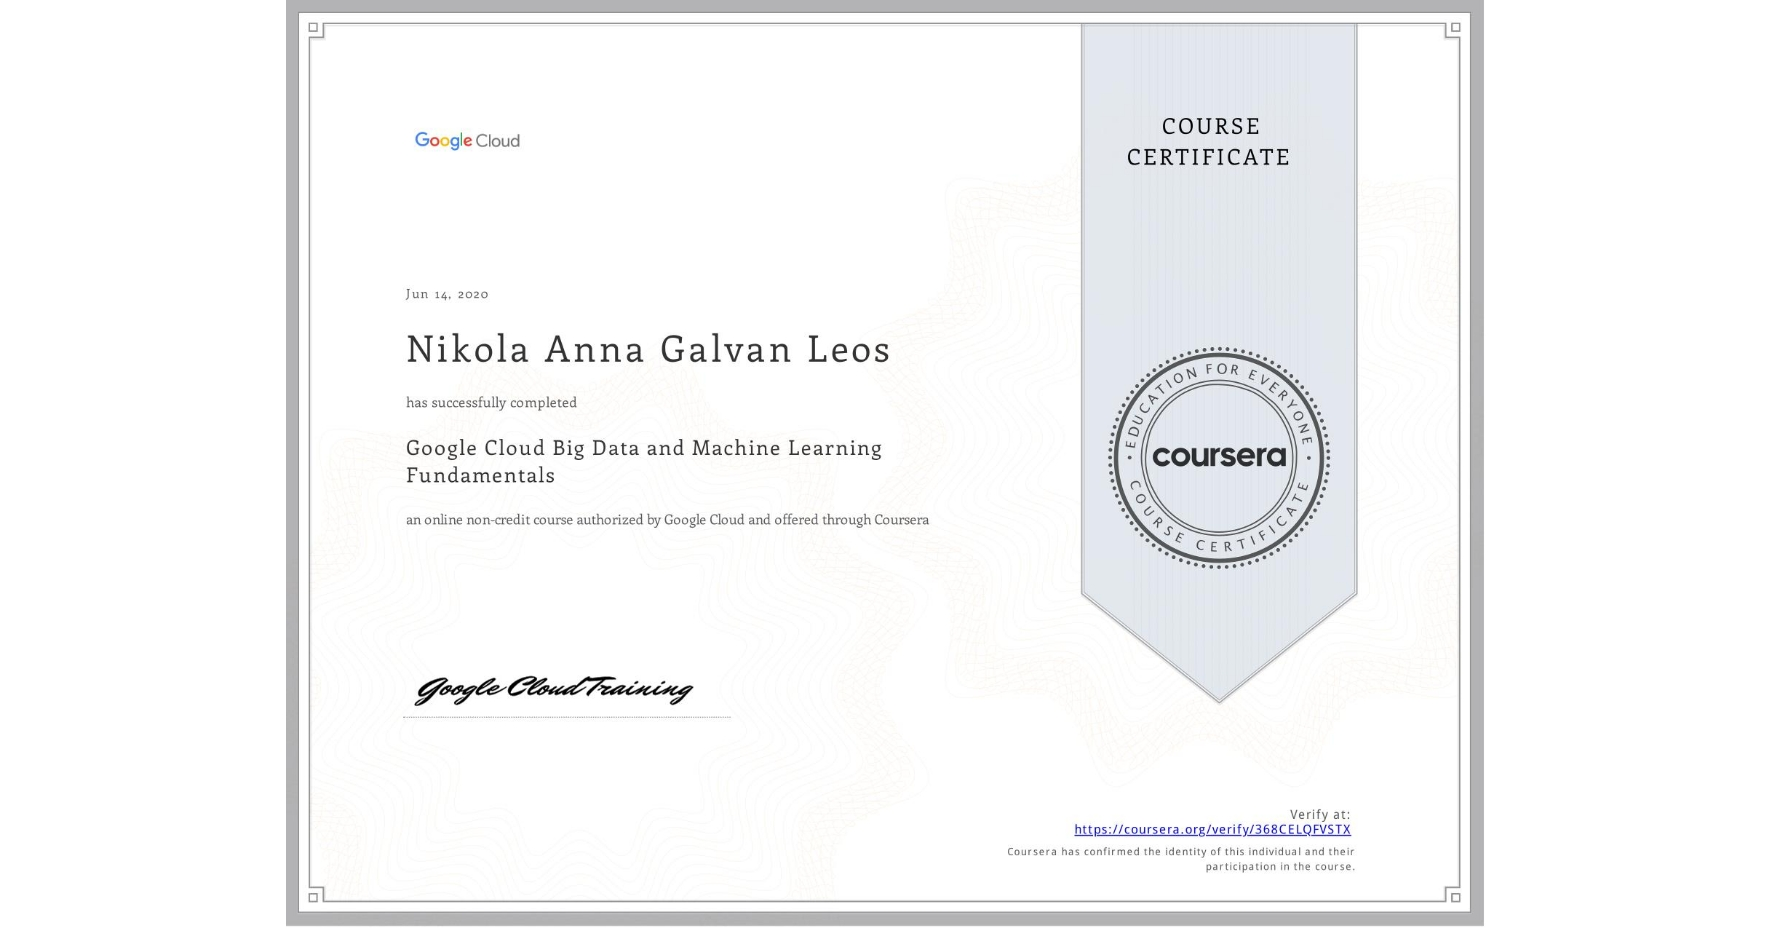 View certificate for Nikola Anna Galvan Leos, Google Cloud Big Data and Machine Learning Fundamentals, an online non-credit course authorized by Google Cloud and offered through Coursera